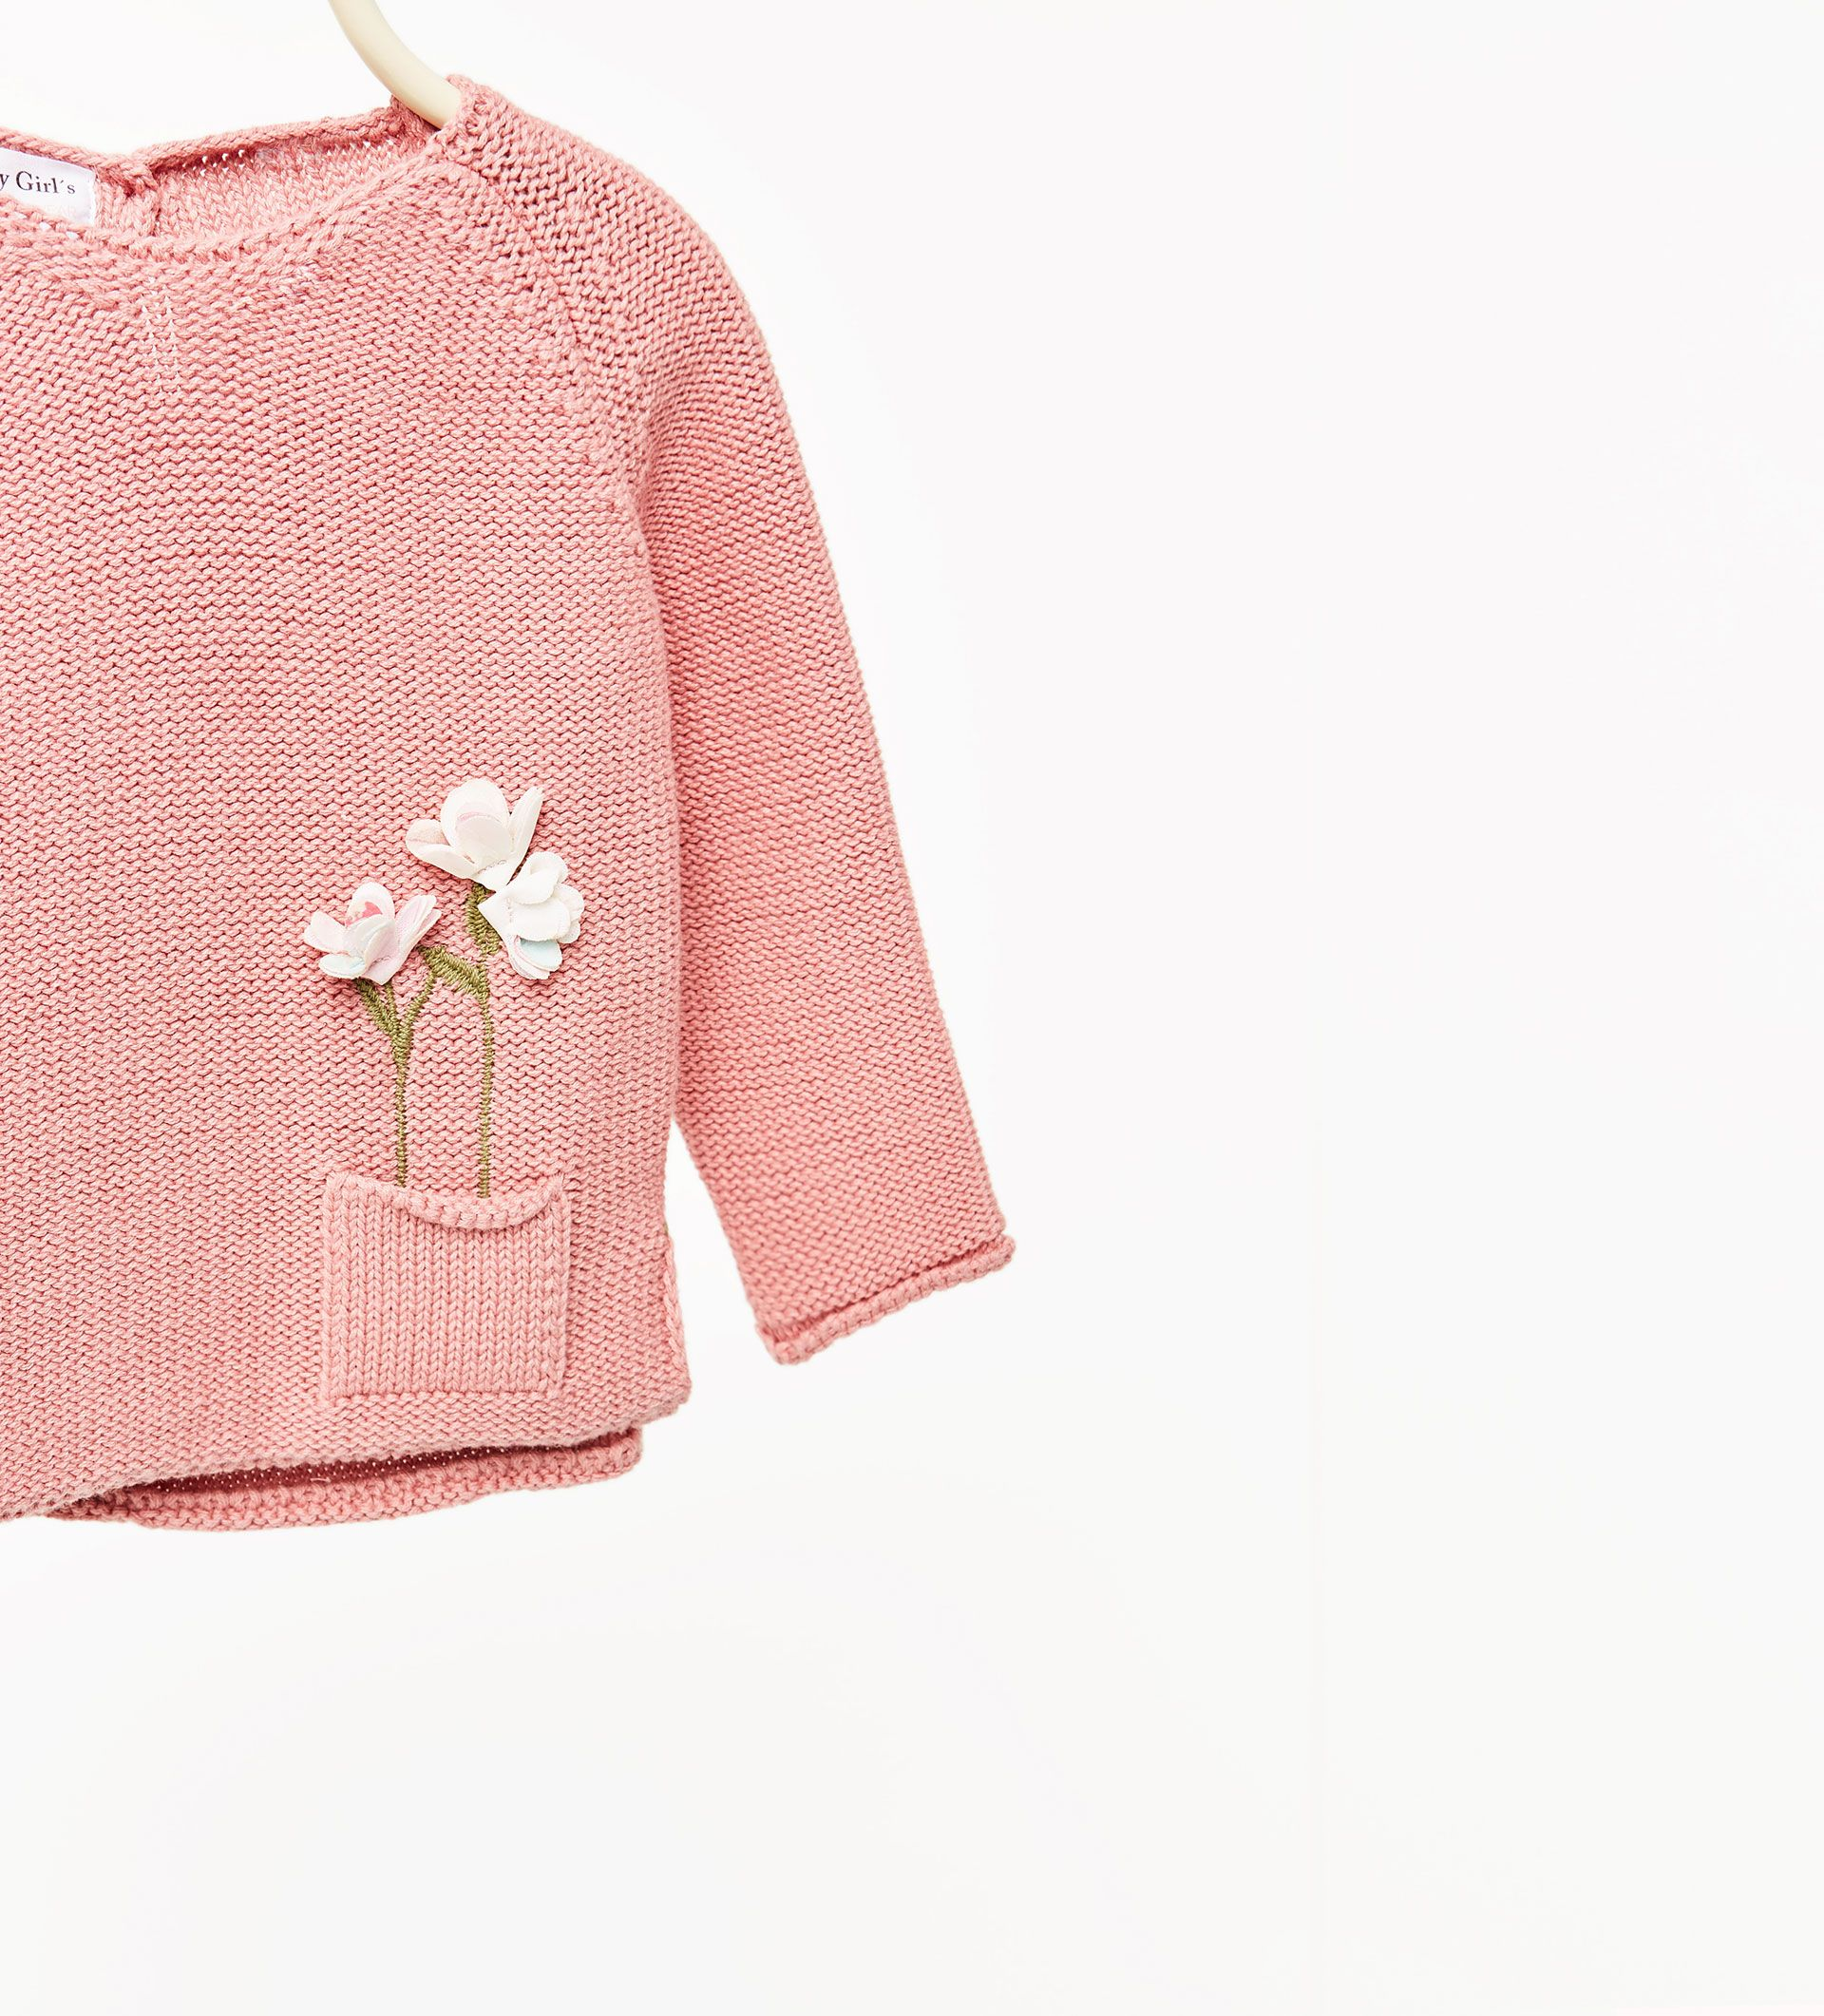 aae46ef31 Floral sweater with pocket